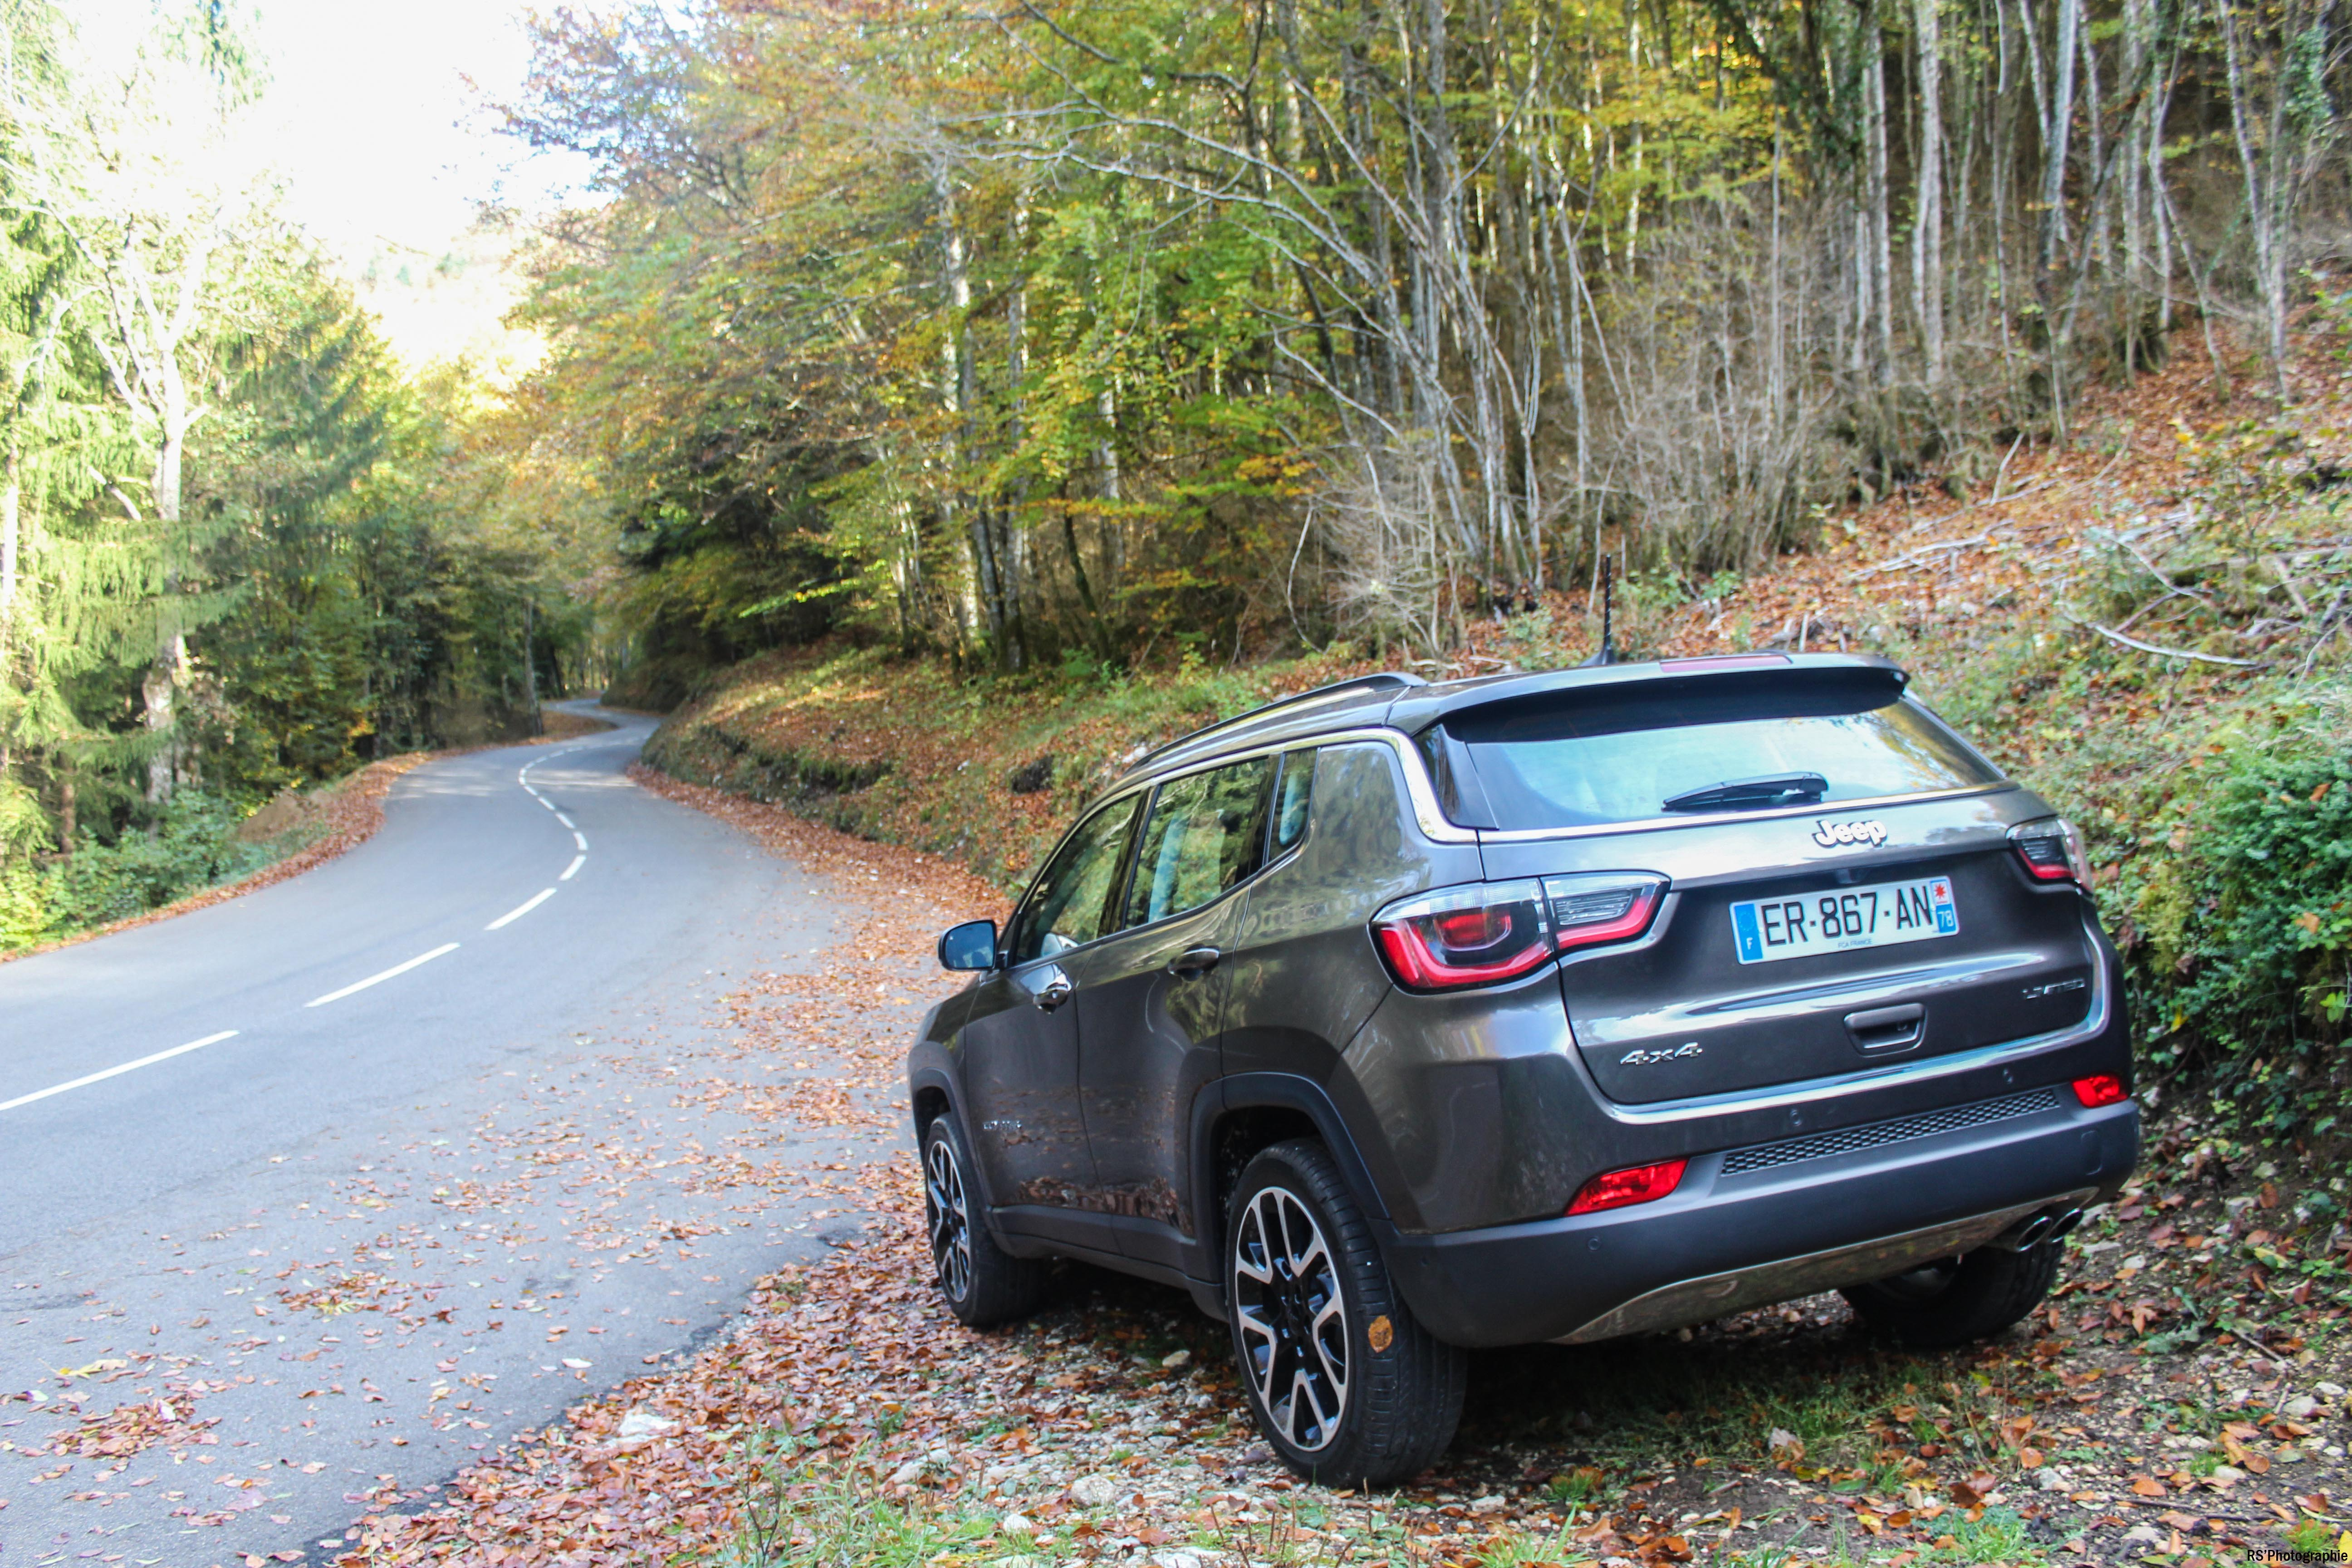 jeepcompass22-jeep-compass-arriere-rear-Arnaud Demasier-RSPhotographie